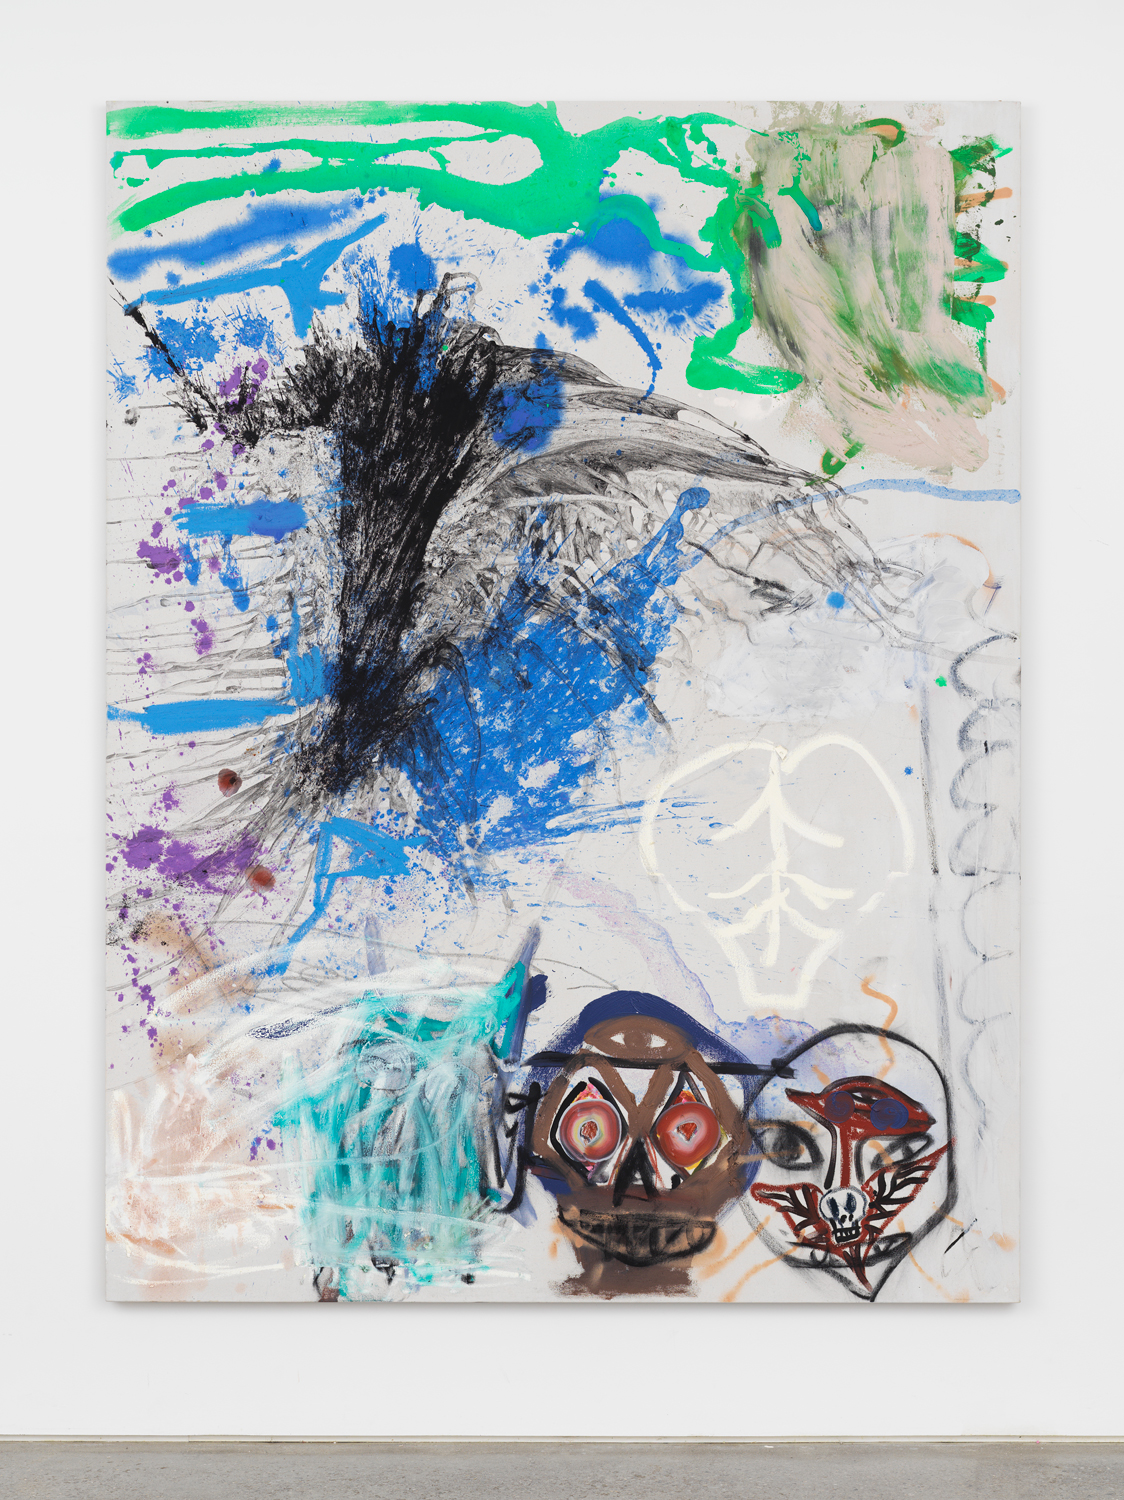 Bill Saylor, Double Overhead, 2018, oil, charcoal, Flashe, and spray paint on canvas, 84h x 64w in.